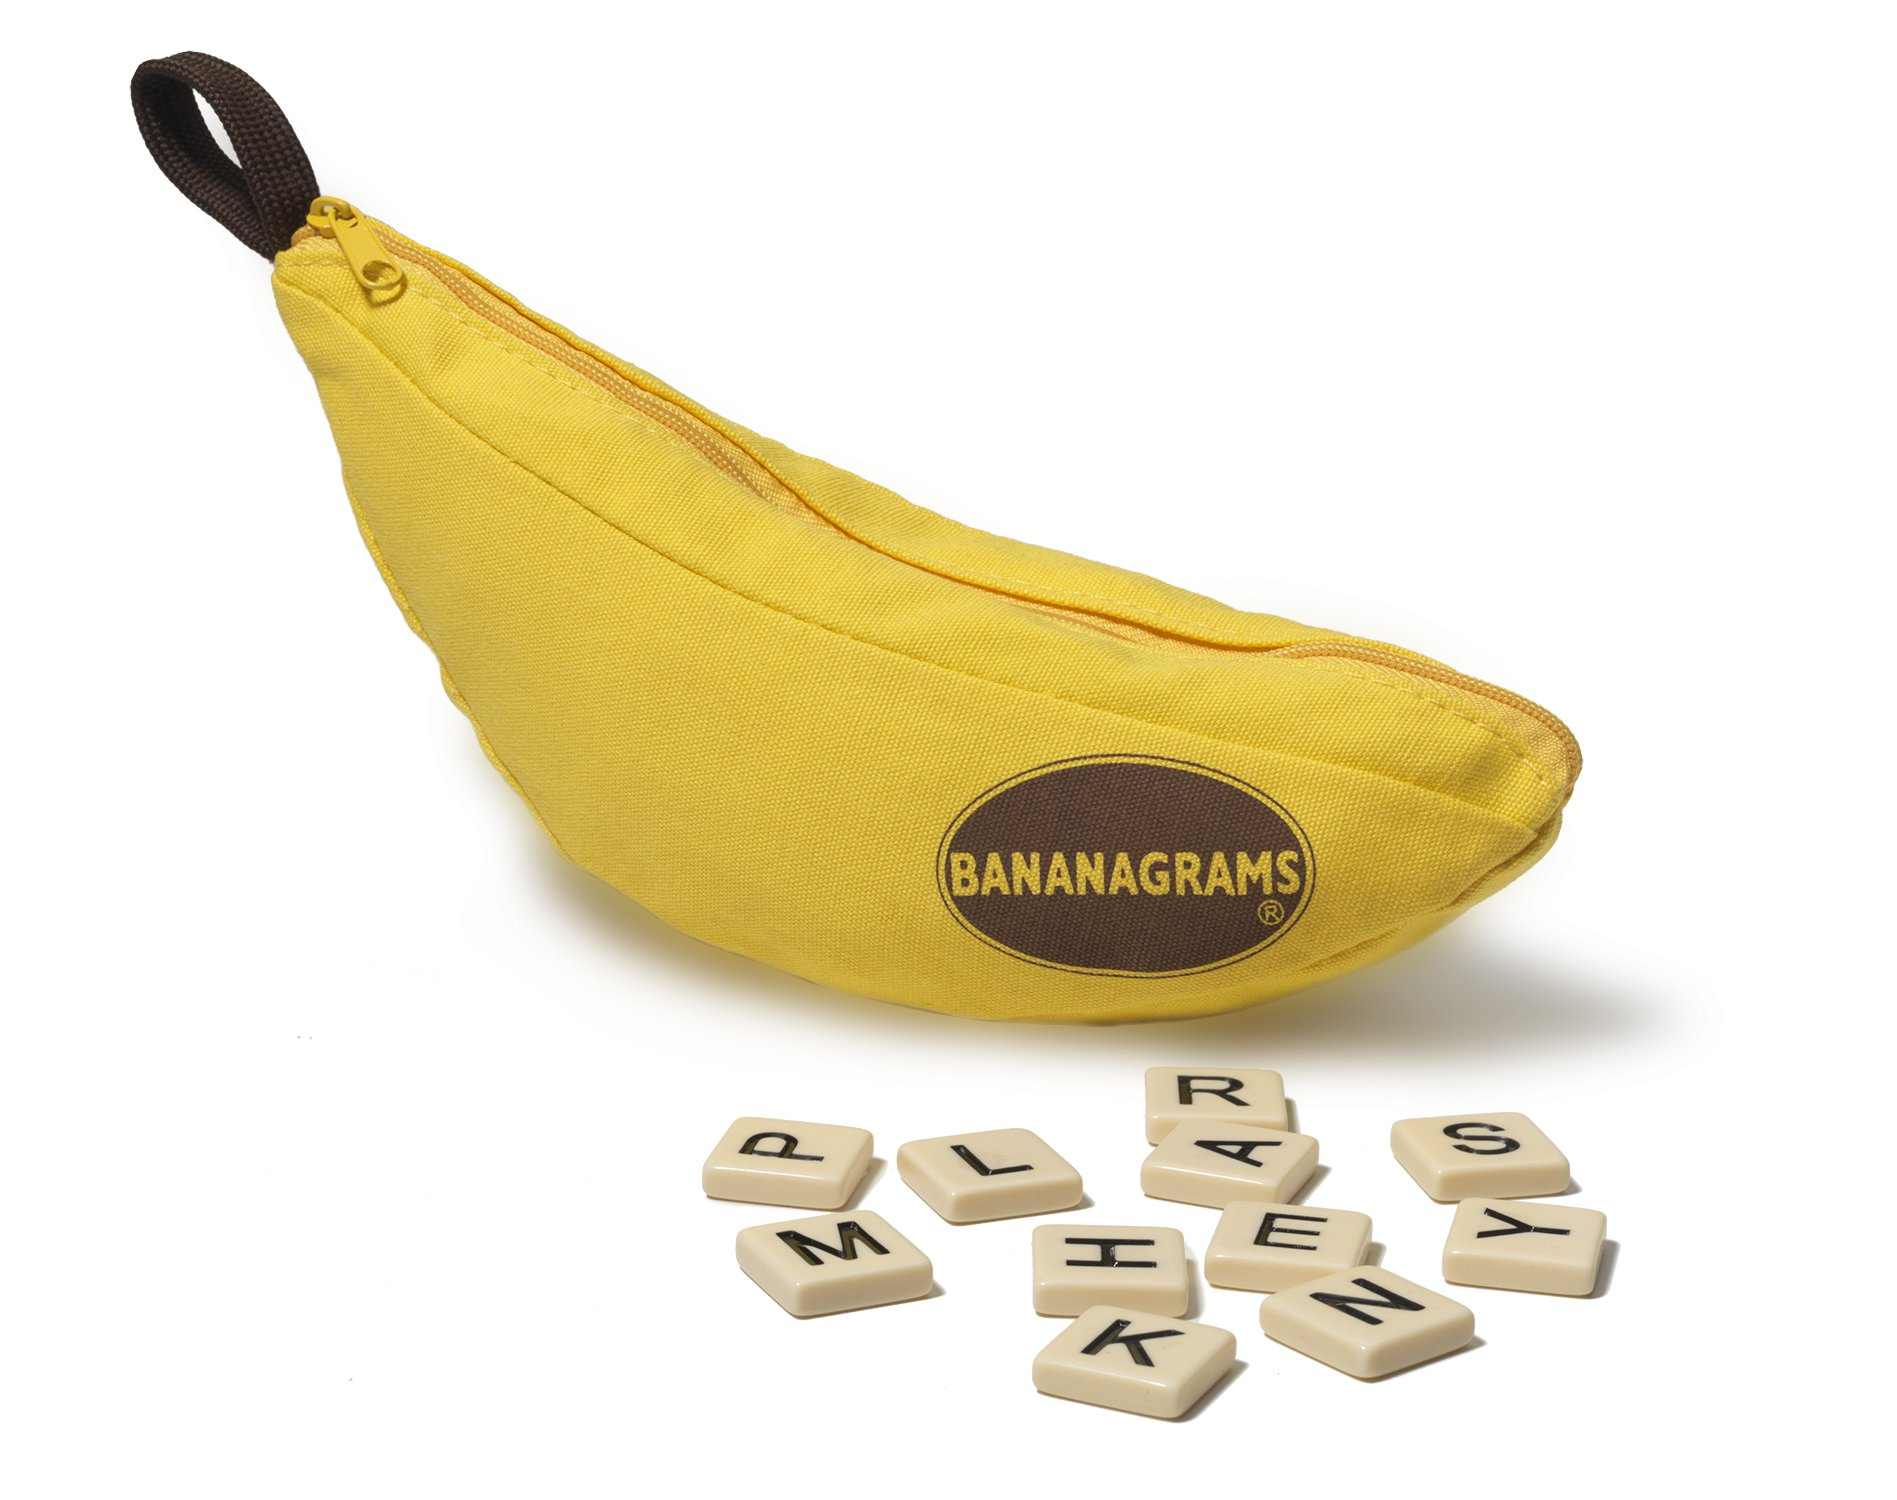 Bananagrams by Bananagrams